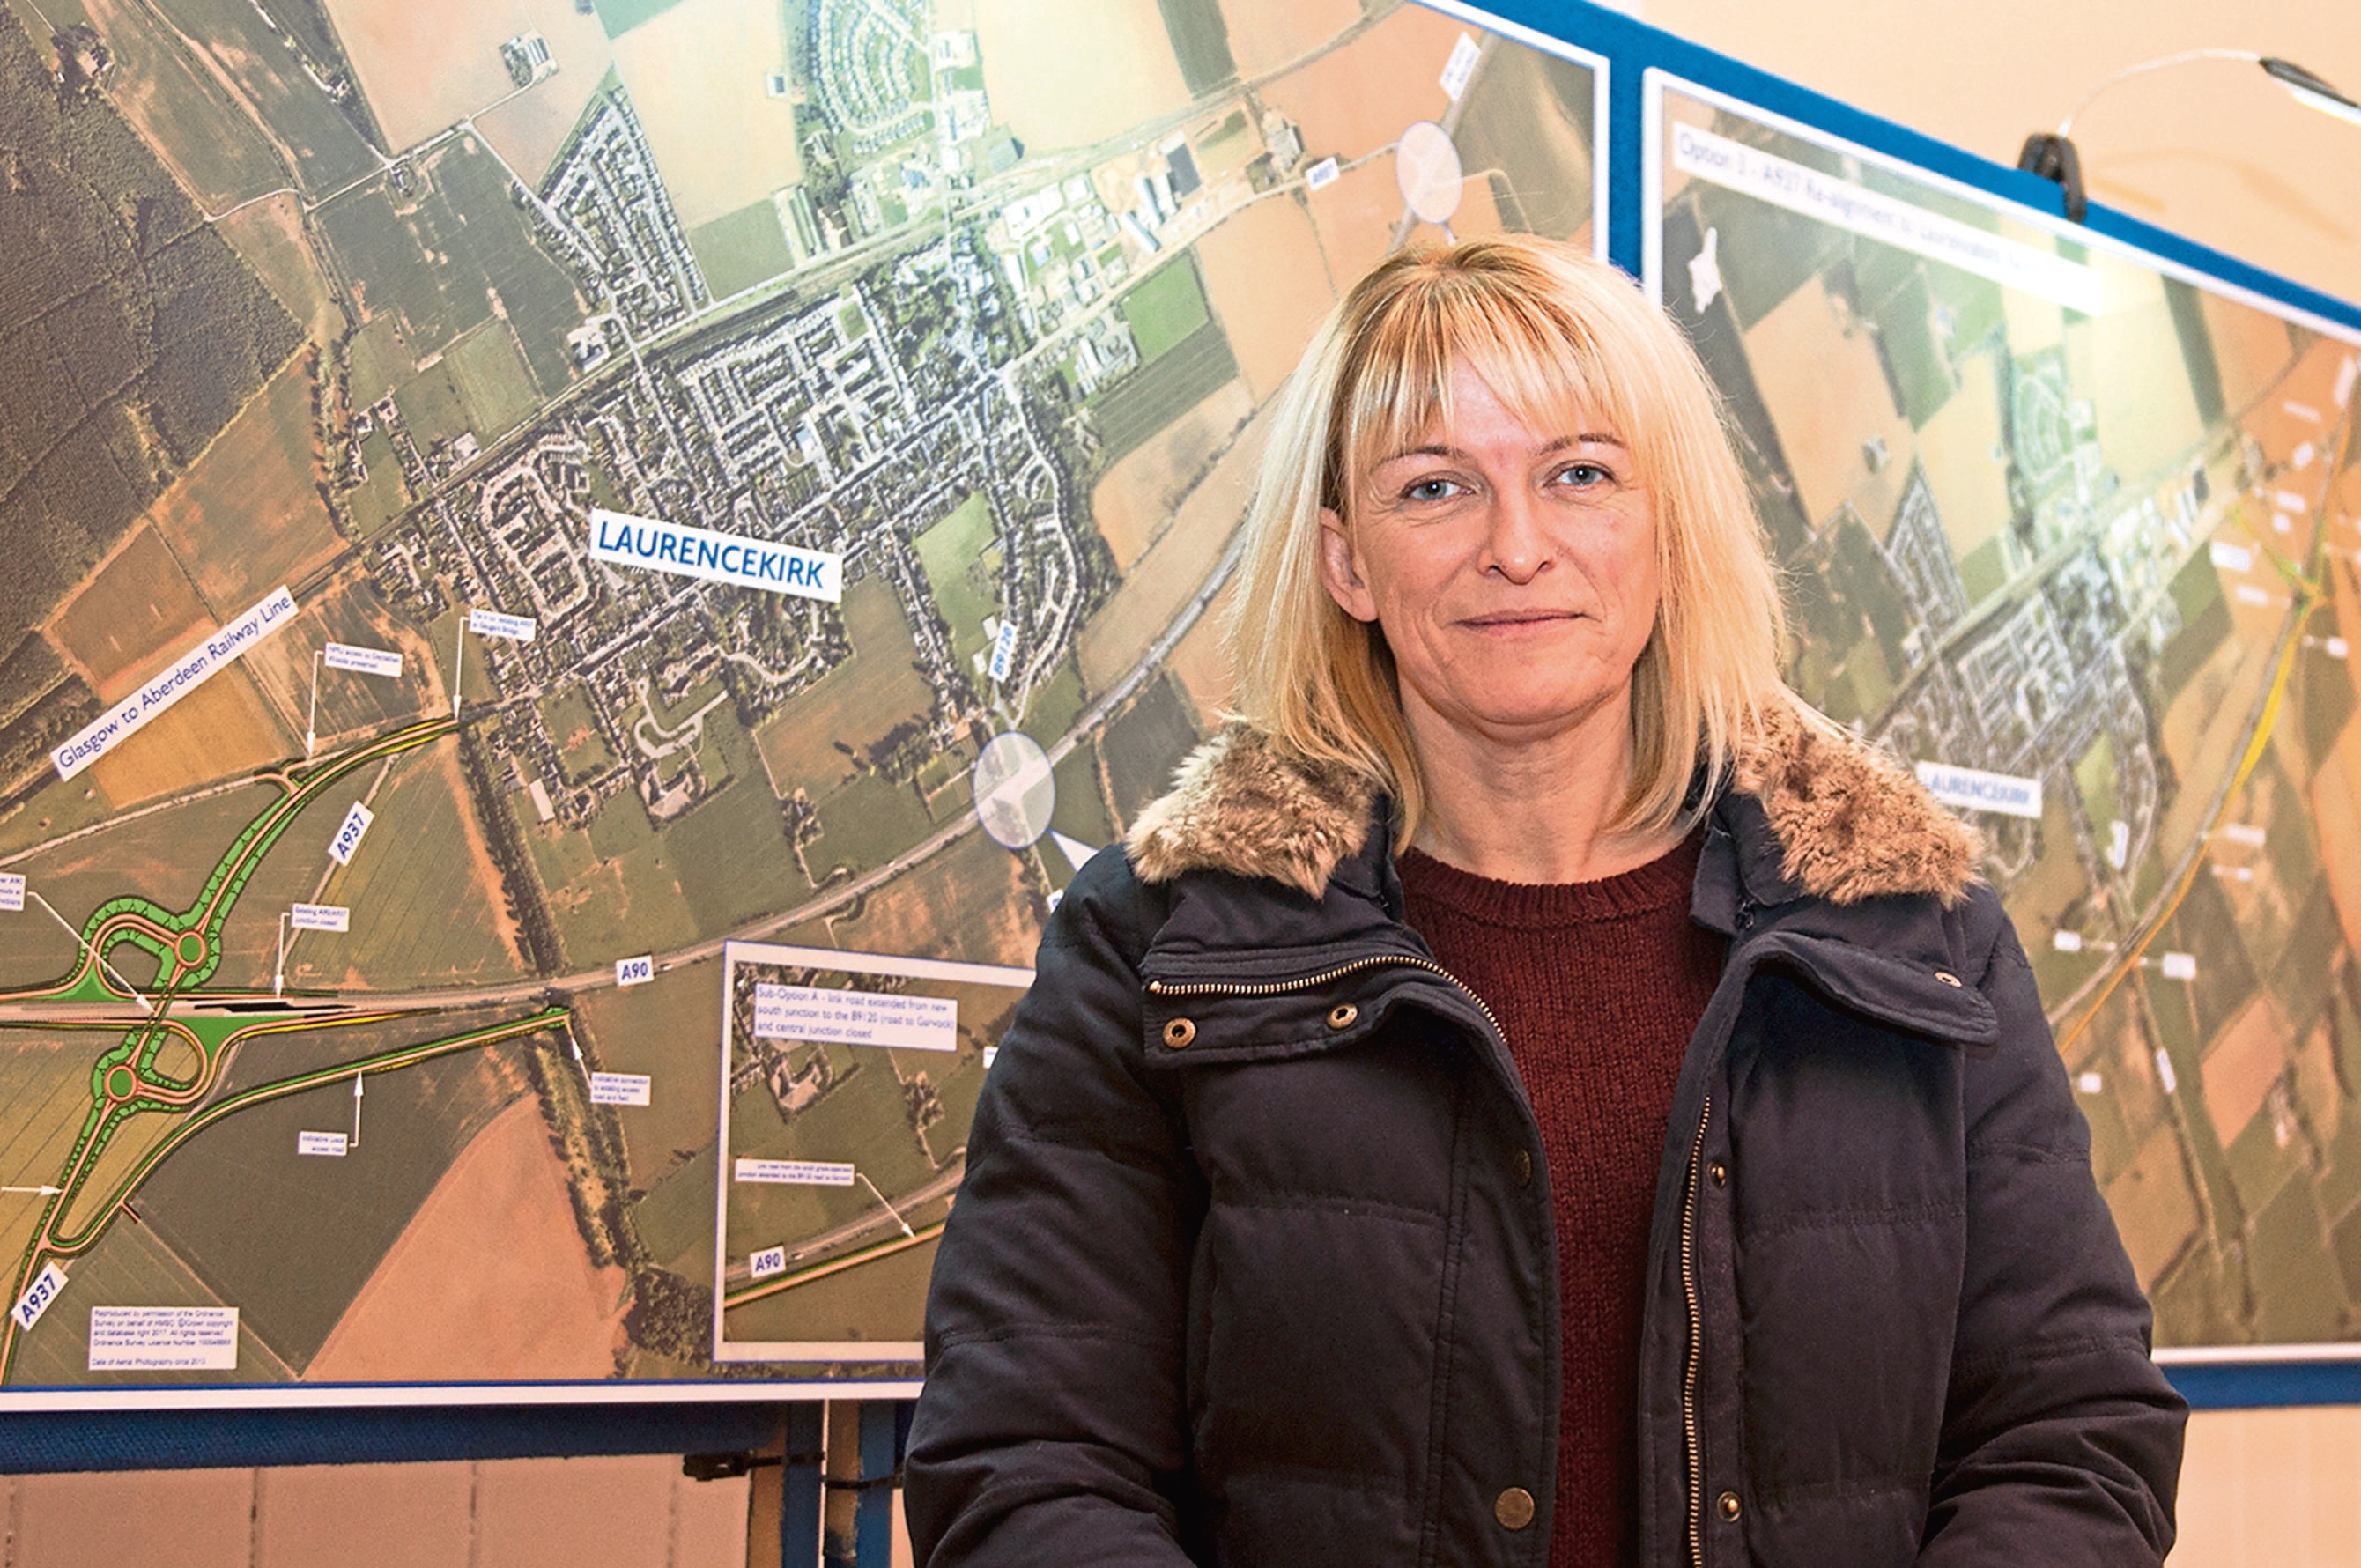 Campaigner Jill Fotheringham welcomed the progress but said she would like to see things happening more quickly